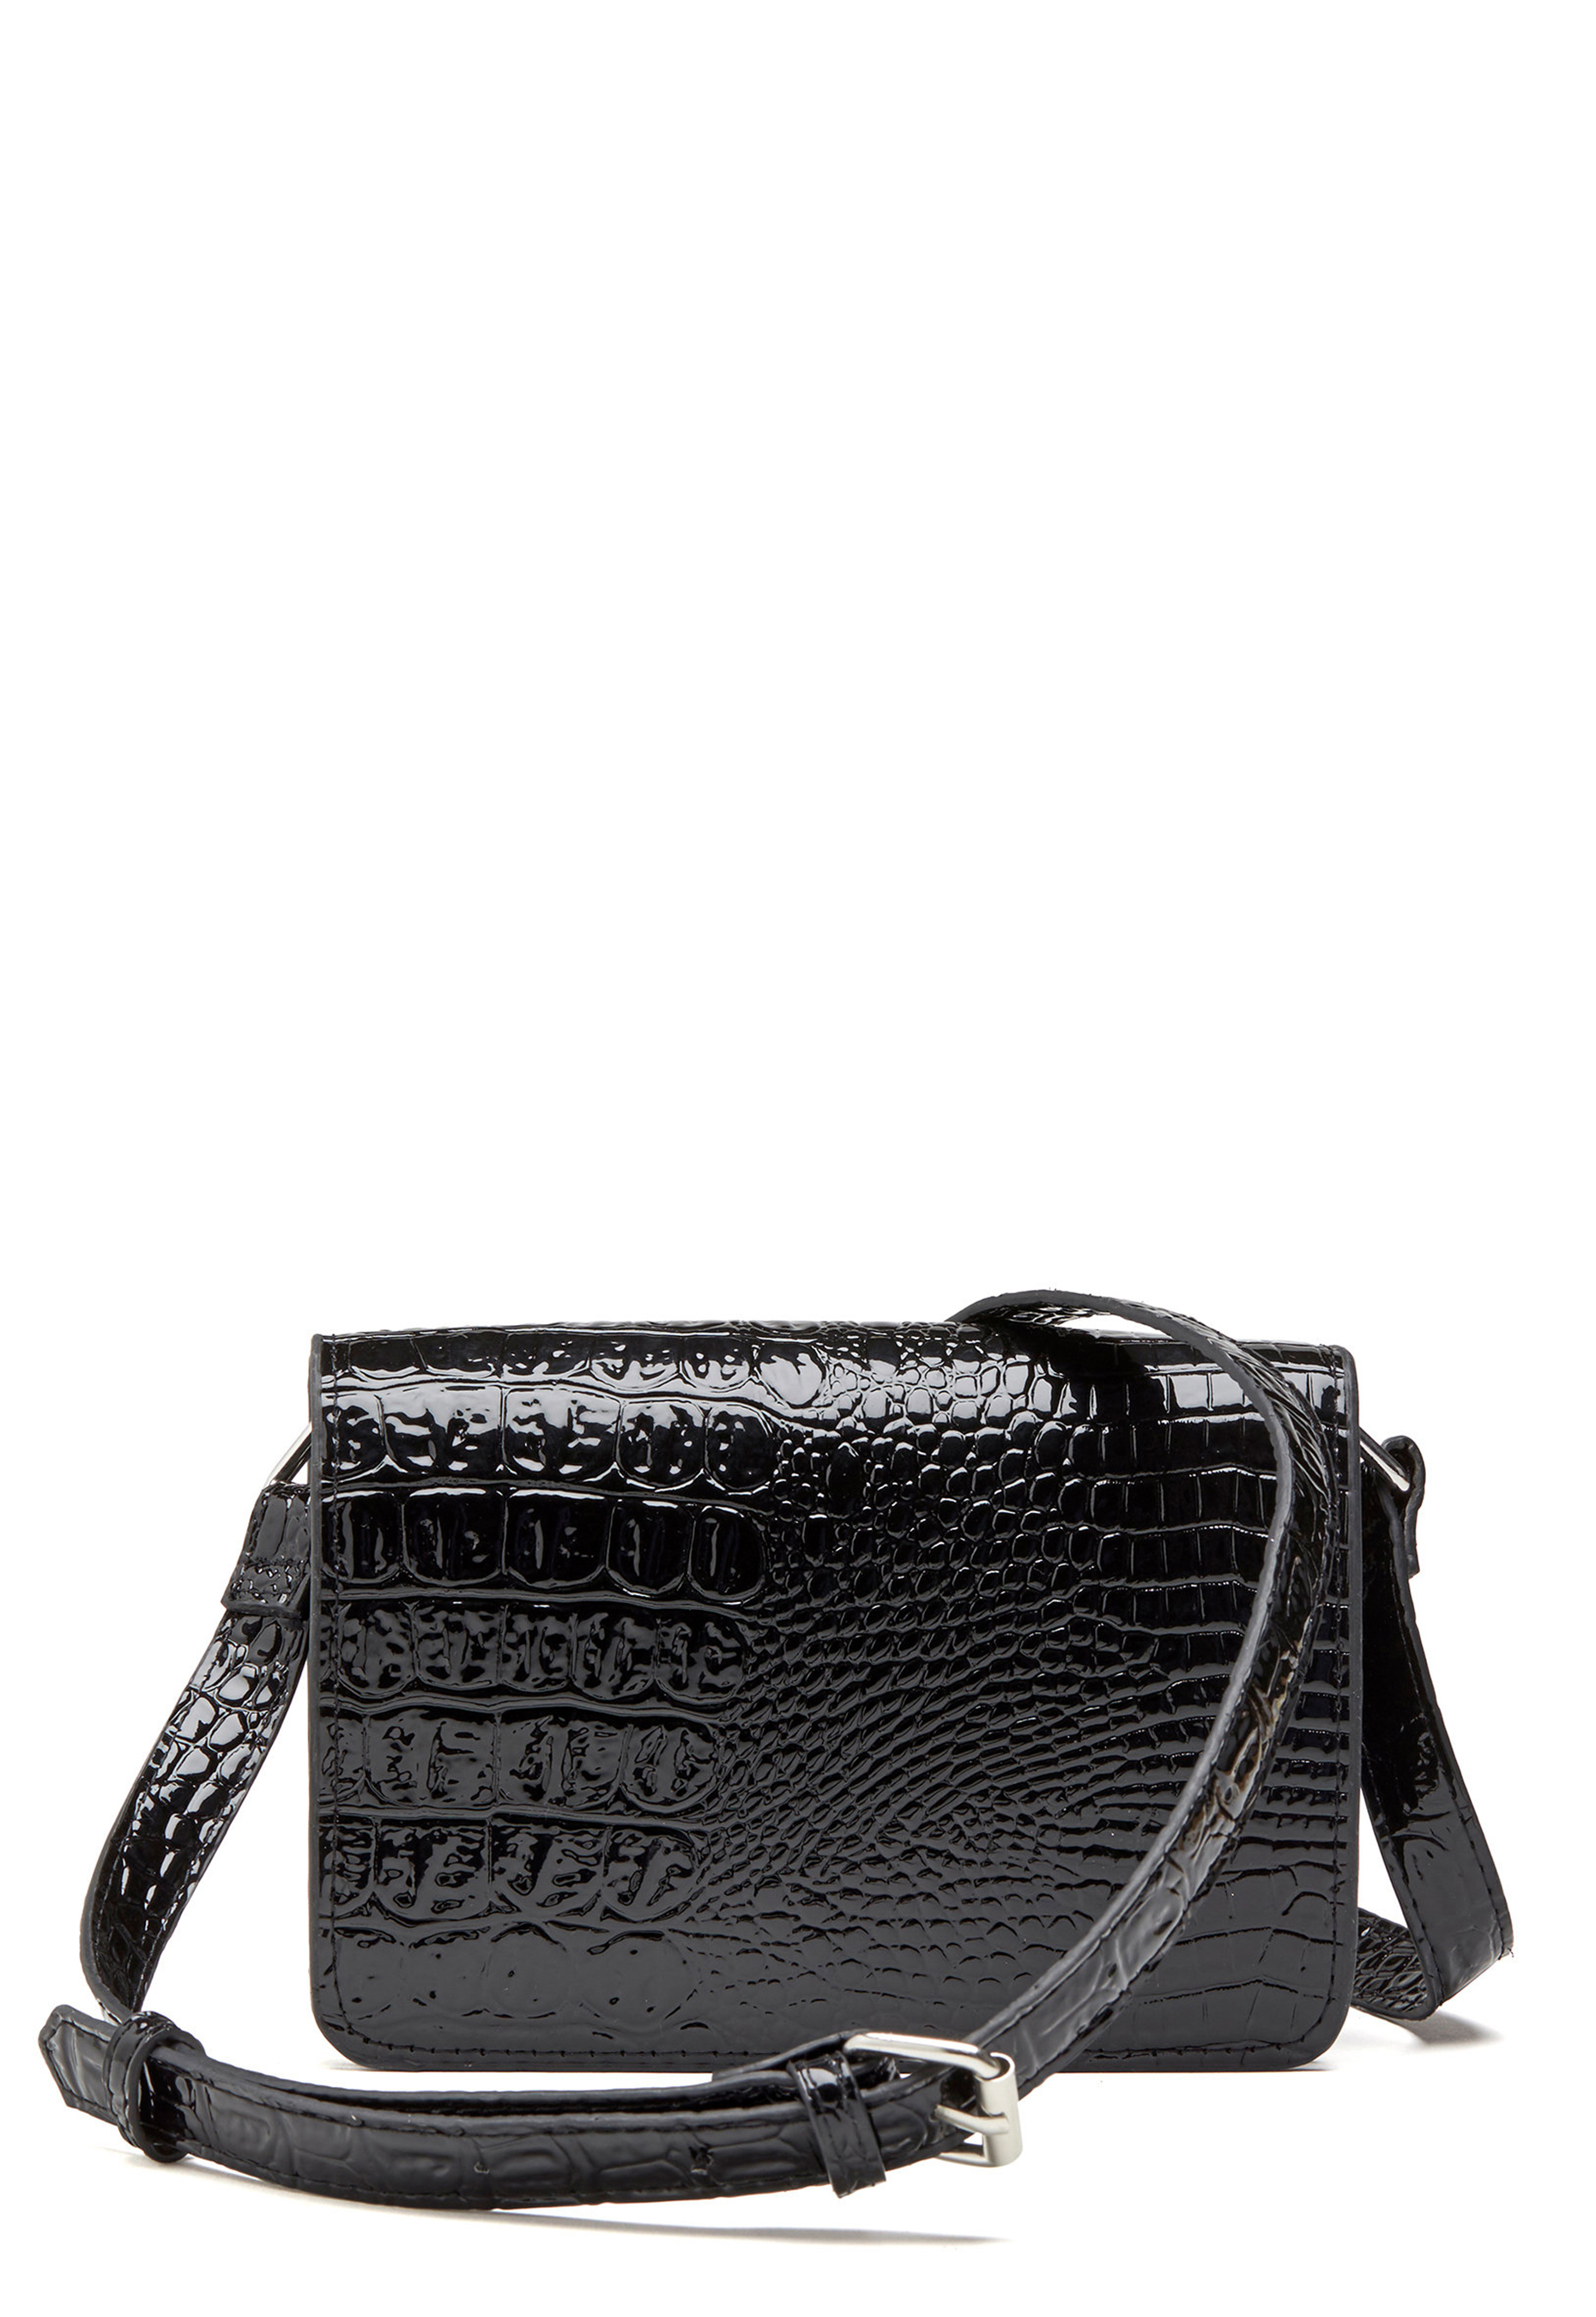 VERO MODA Billa Cross Over Bag Black - Bubbleroom fb41be92e7759